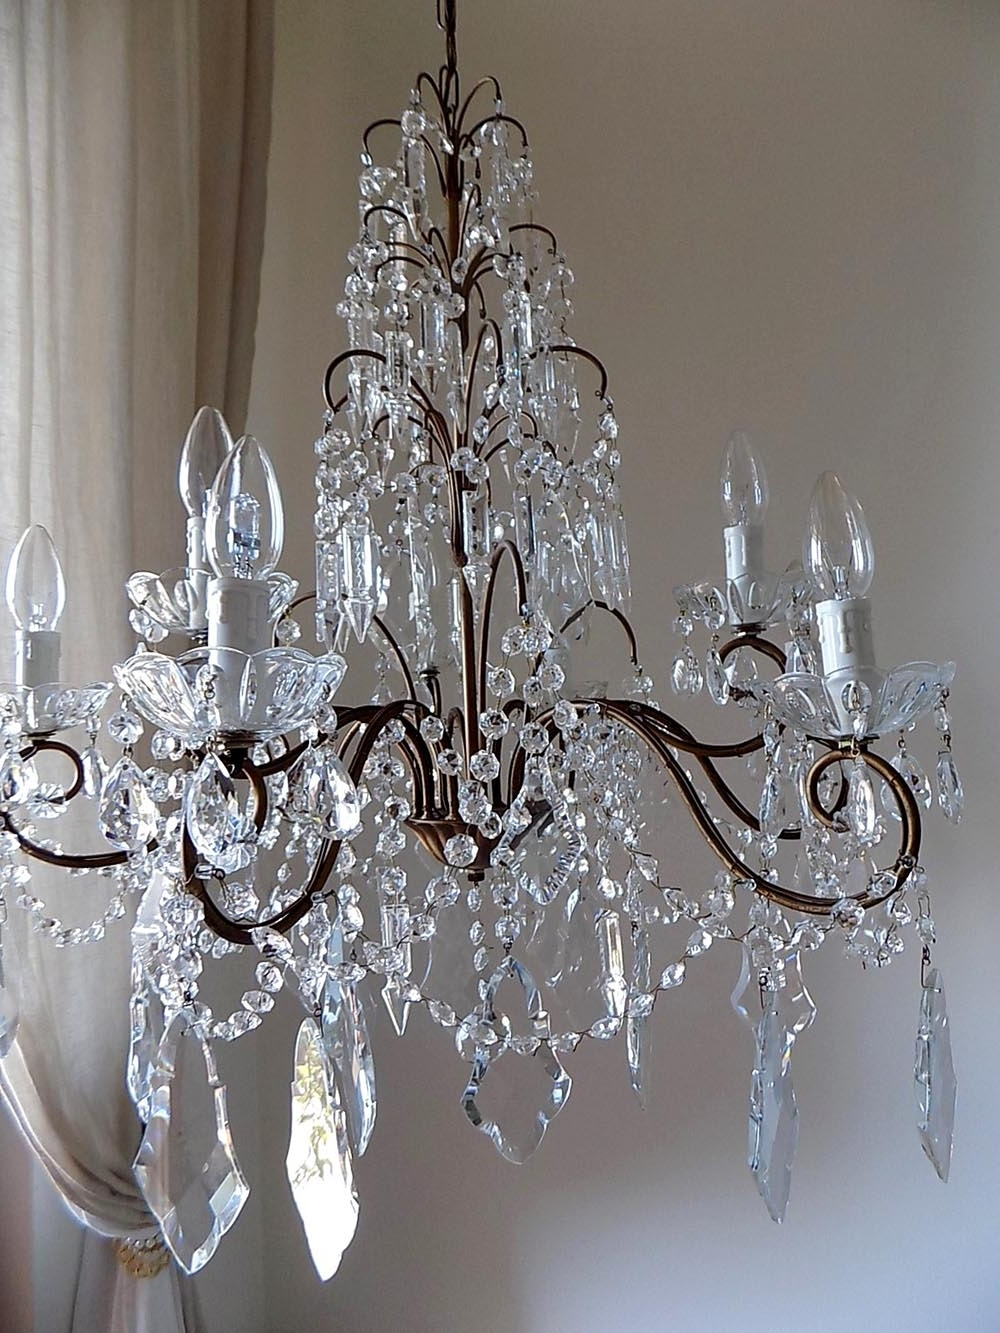 Crystal And Brass Chandelier In Popular Italian Vintage 9 Arms Chandelier With Rare Shaped Crystals (View 9 of 20)